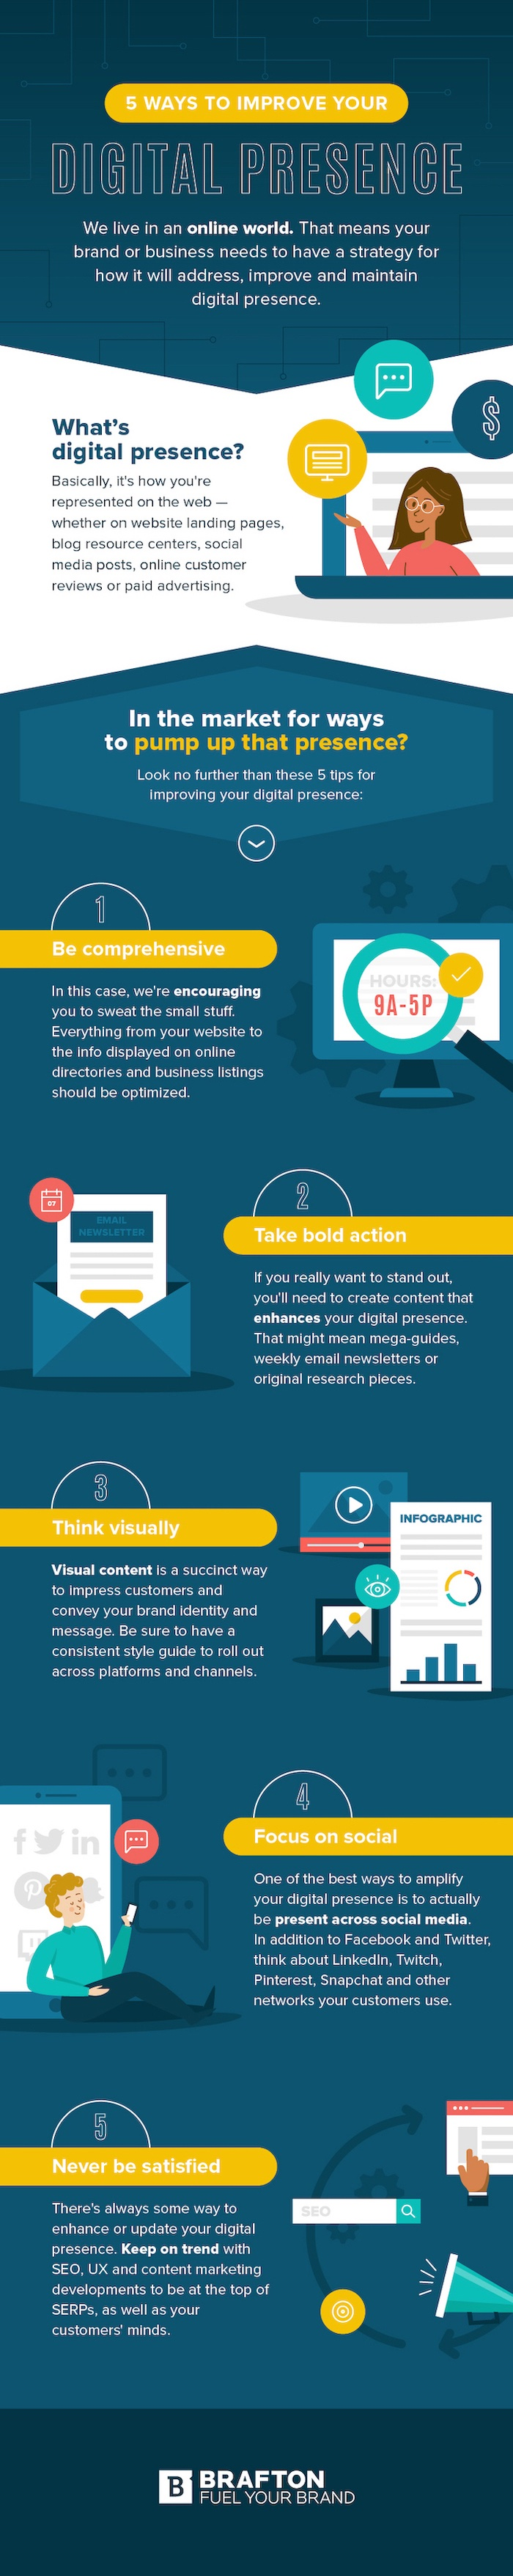 Five Tips for Improving Your Digital Presence in 2021 [Infographic]